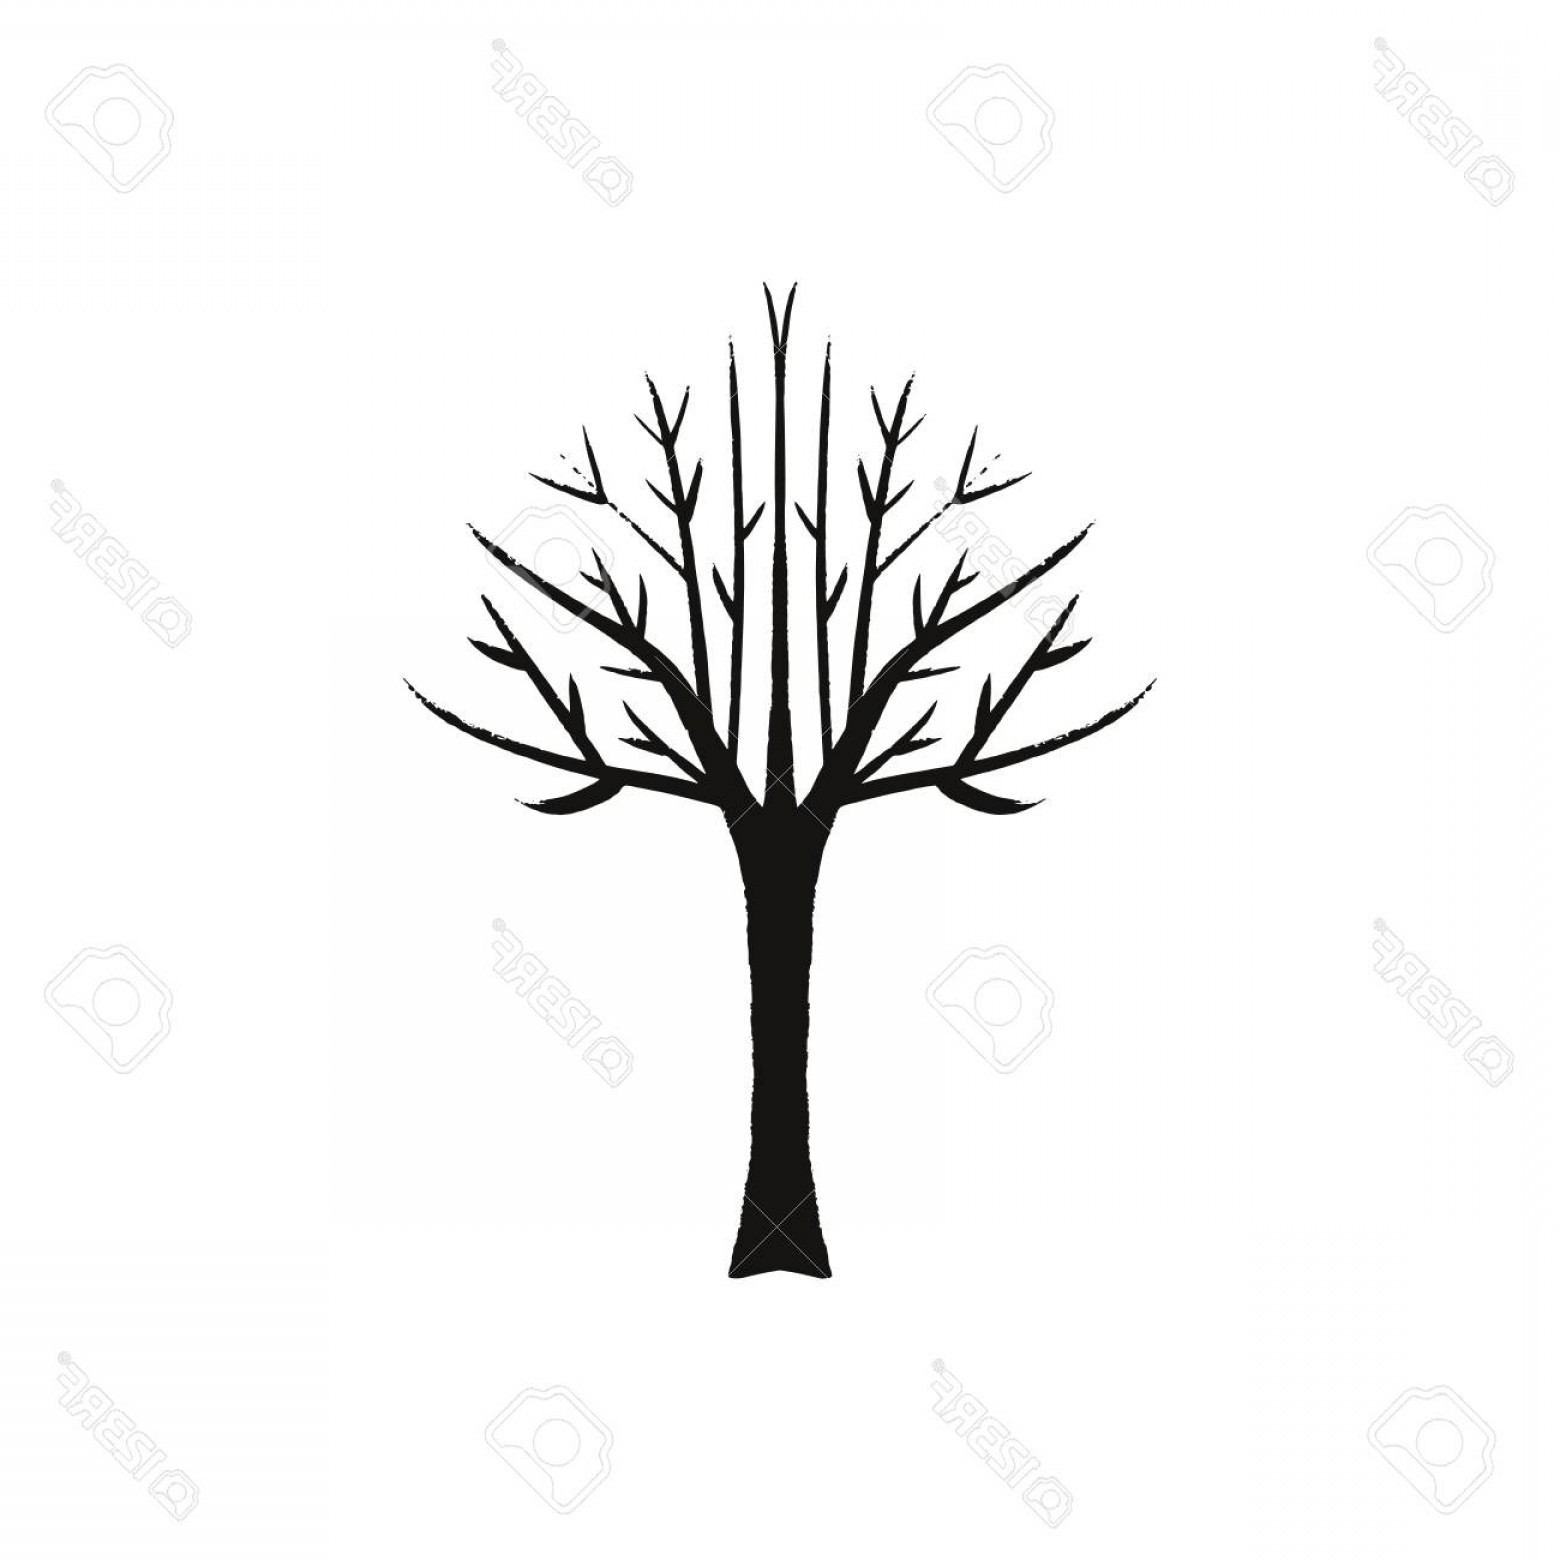 Continuous Tree Branch Vector Image: Photostock Vector Krone Tree Bare Branches Fallen Leaves Continuous Line Tree On White Background